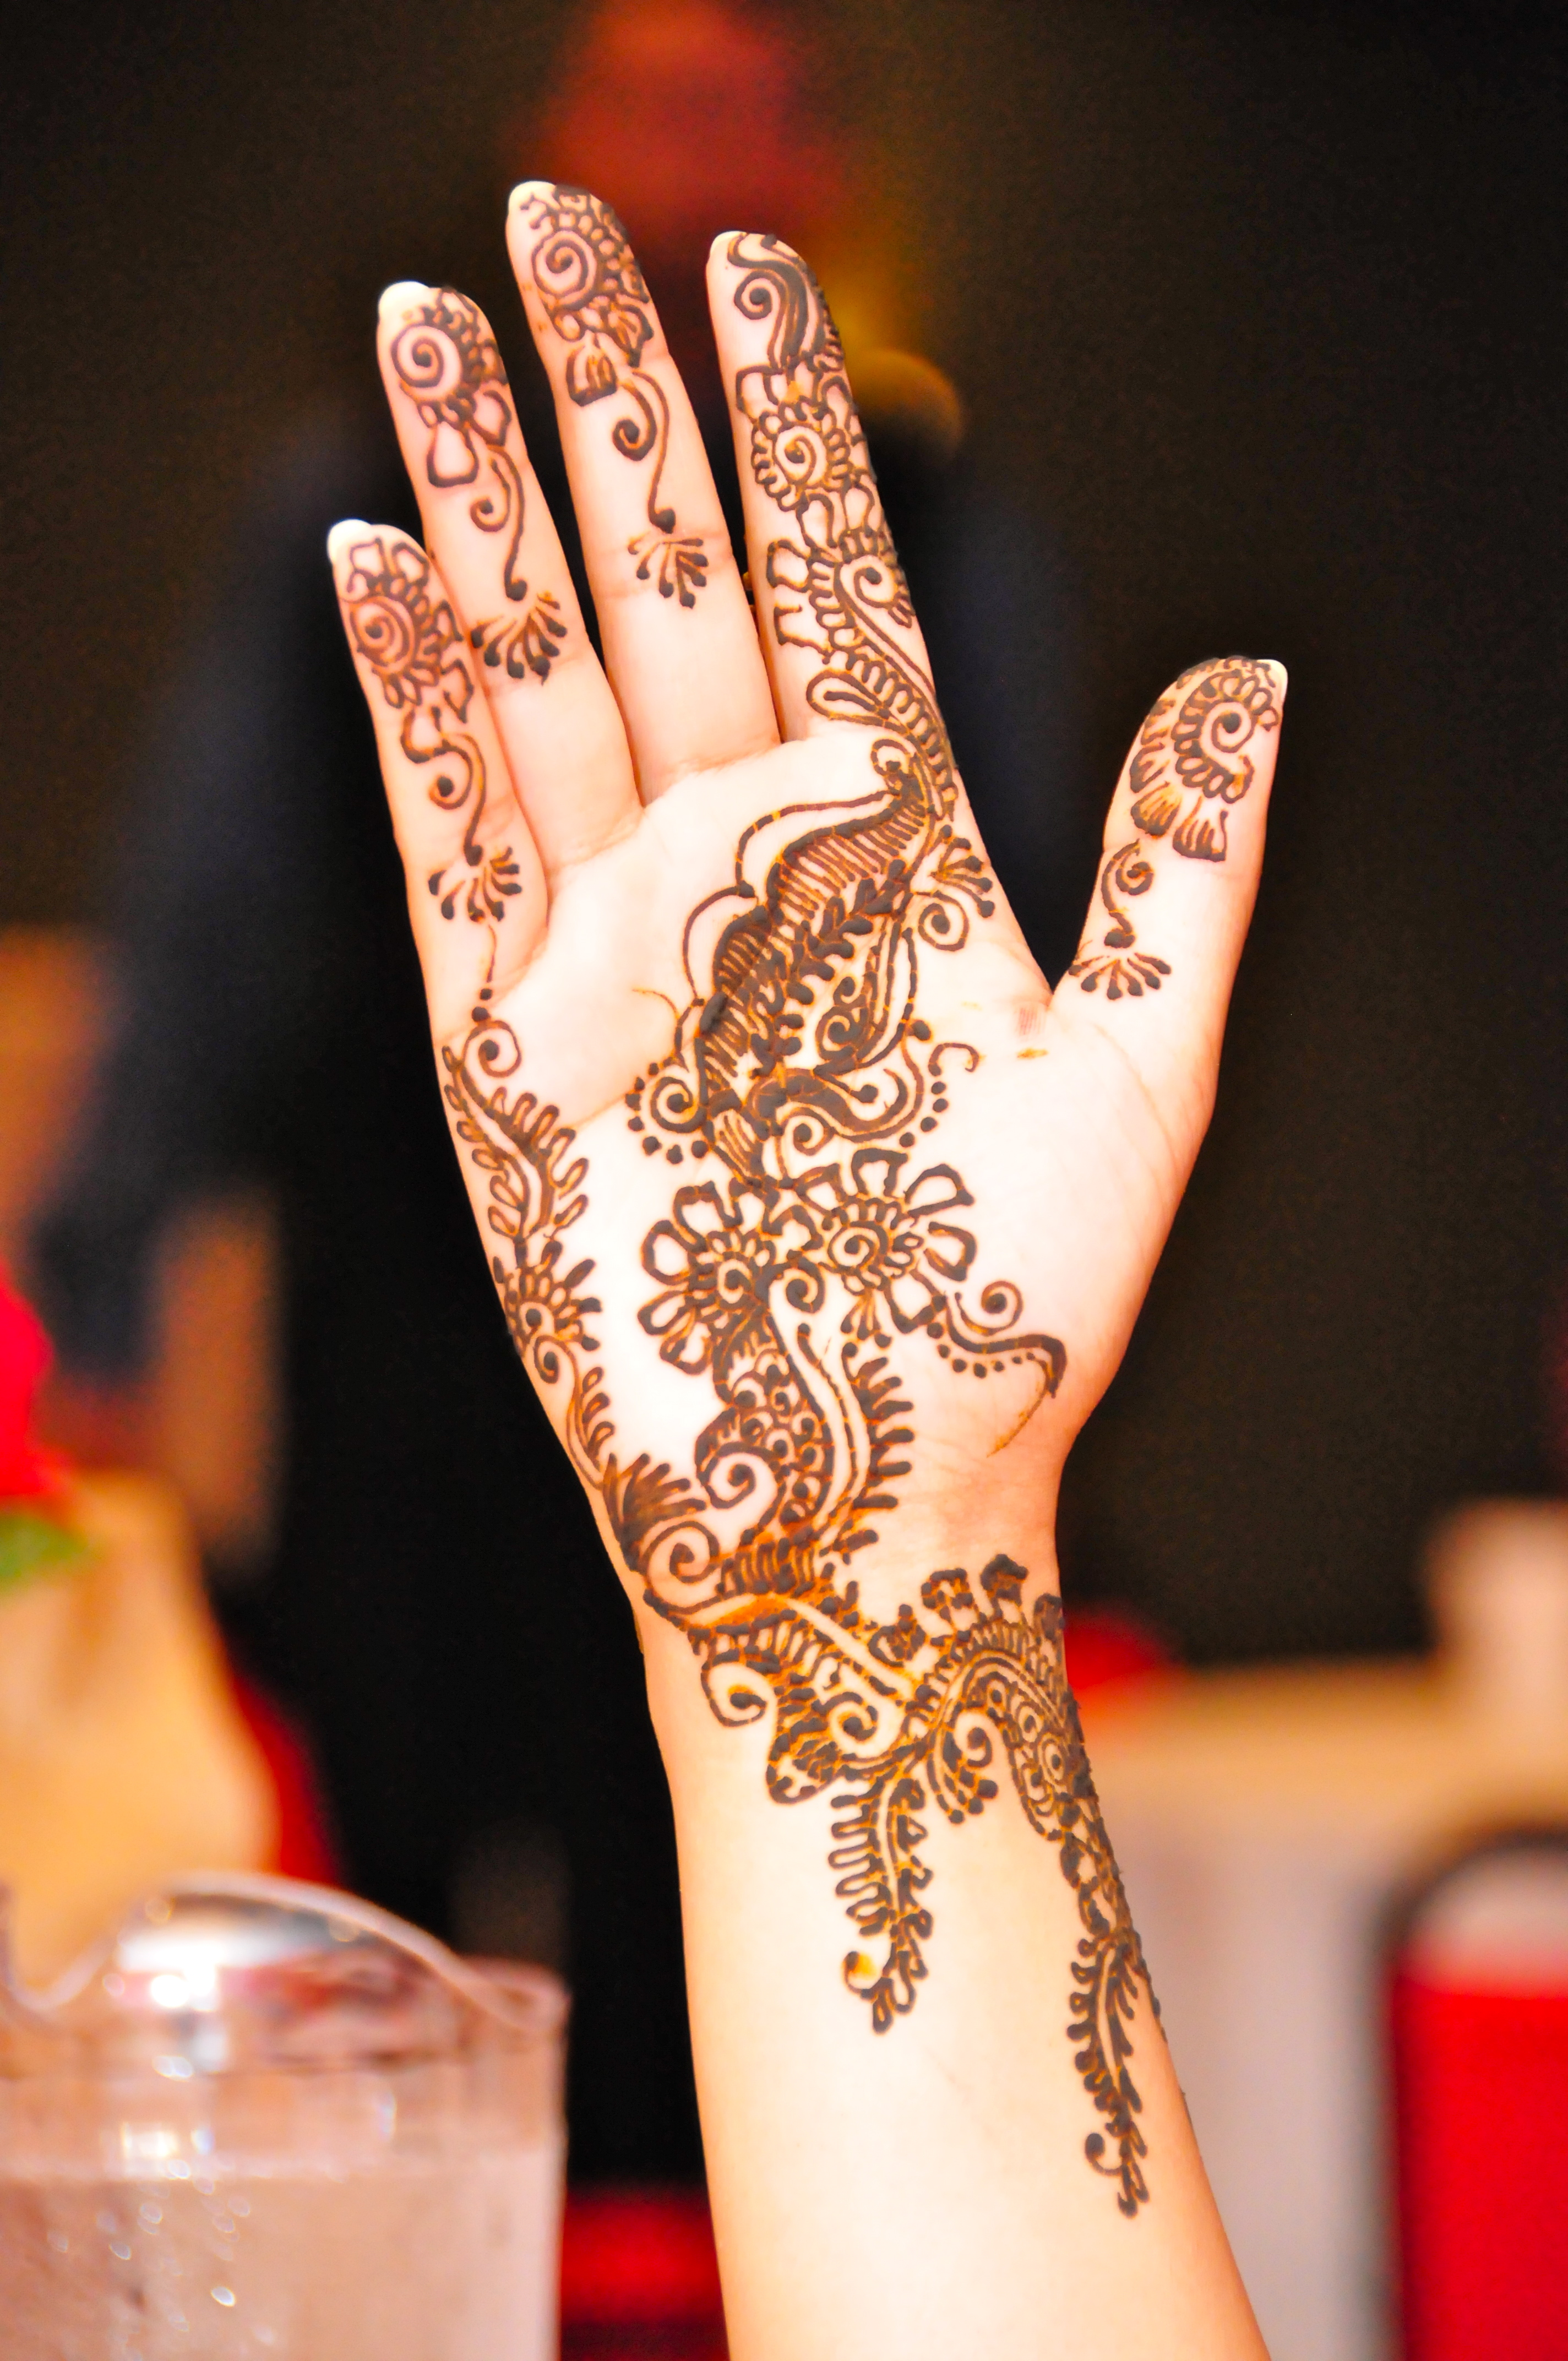 Description Mehndi design.jpg